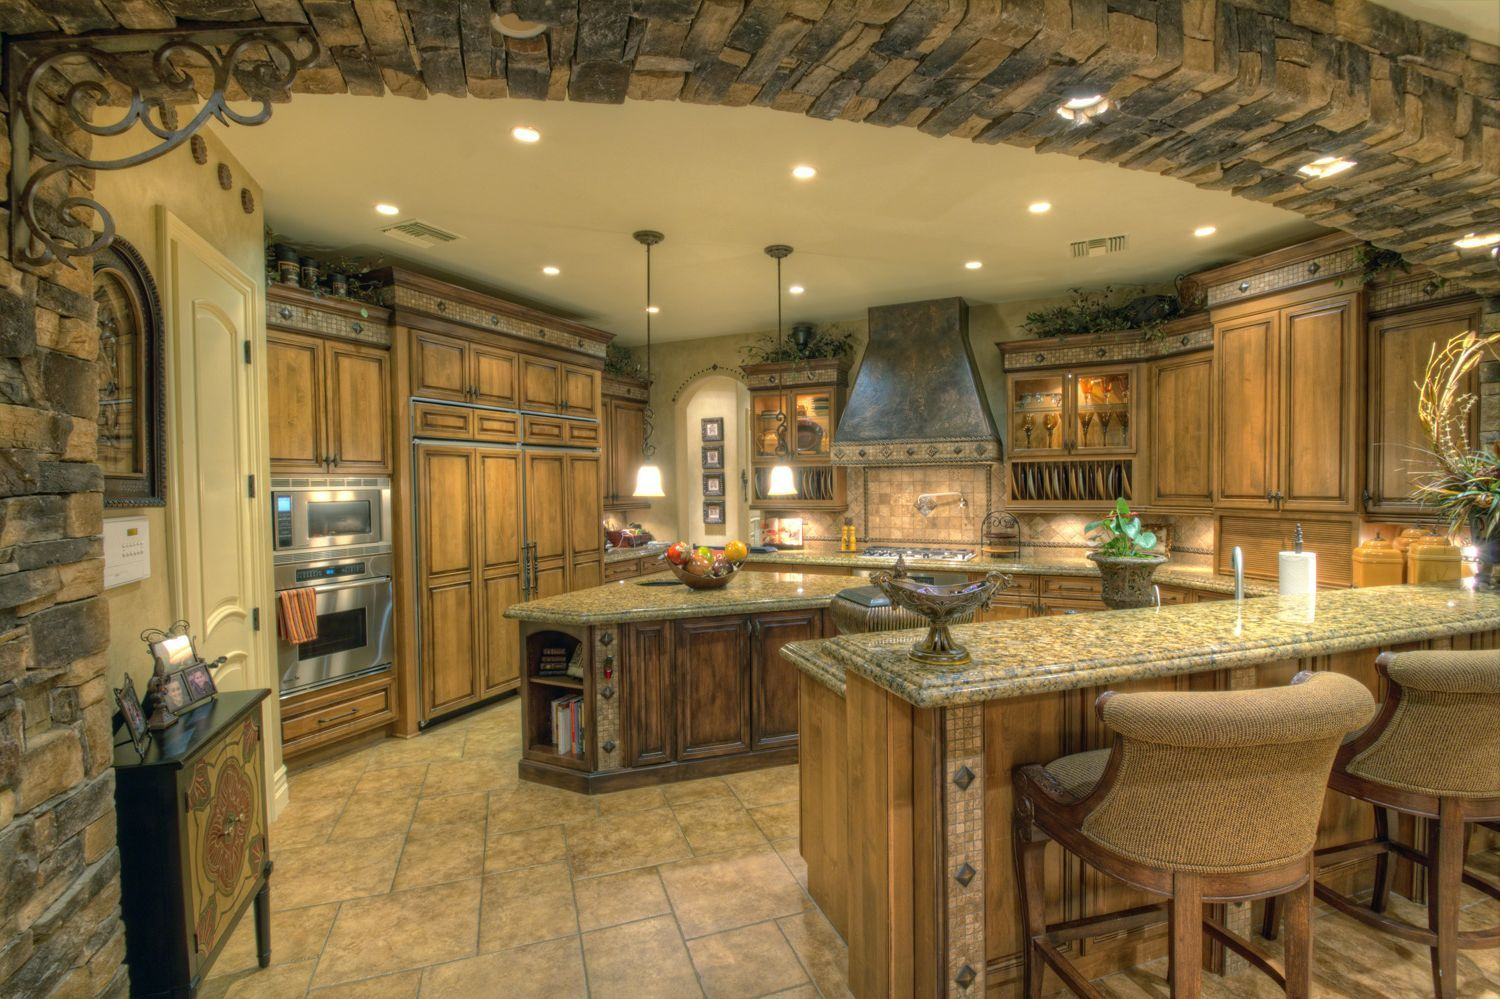 Luxury kitchen with stone archway and granite counter tops for Luxury kitchen cabinets